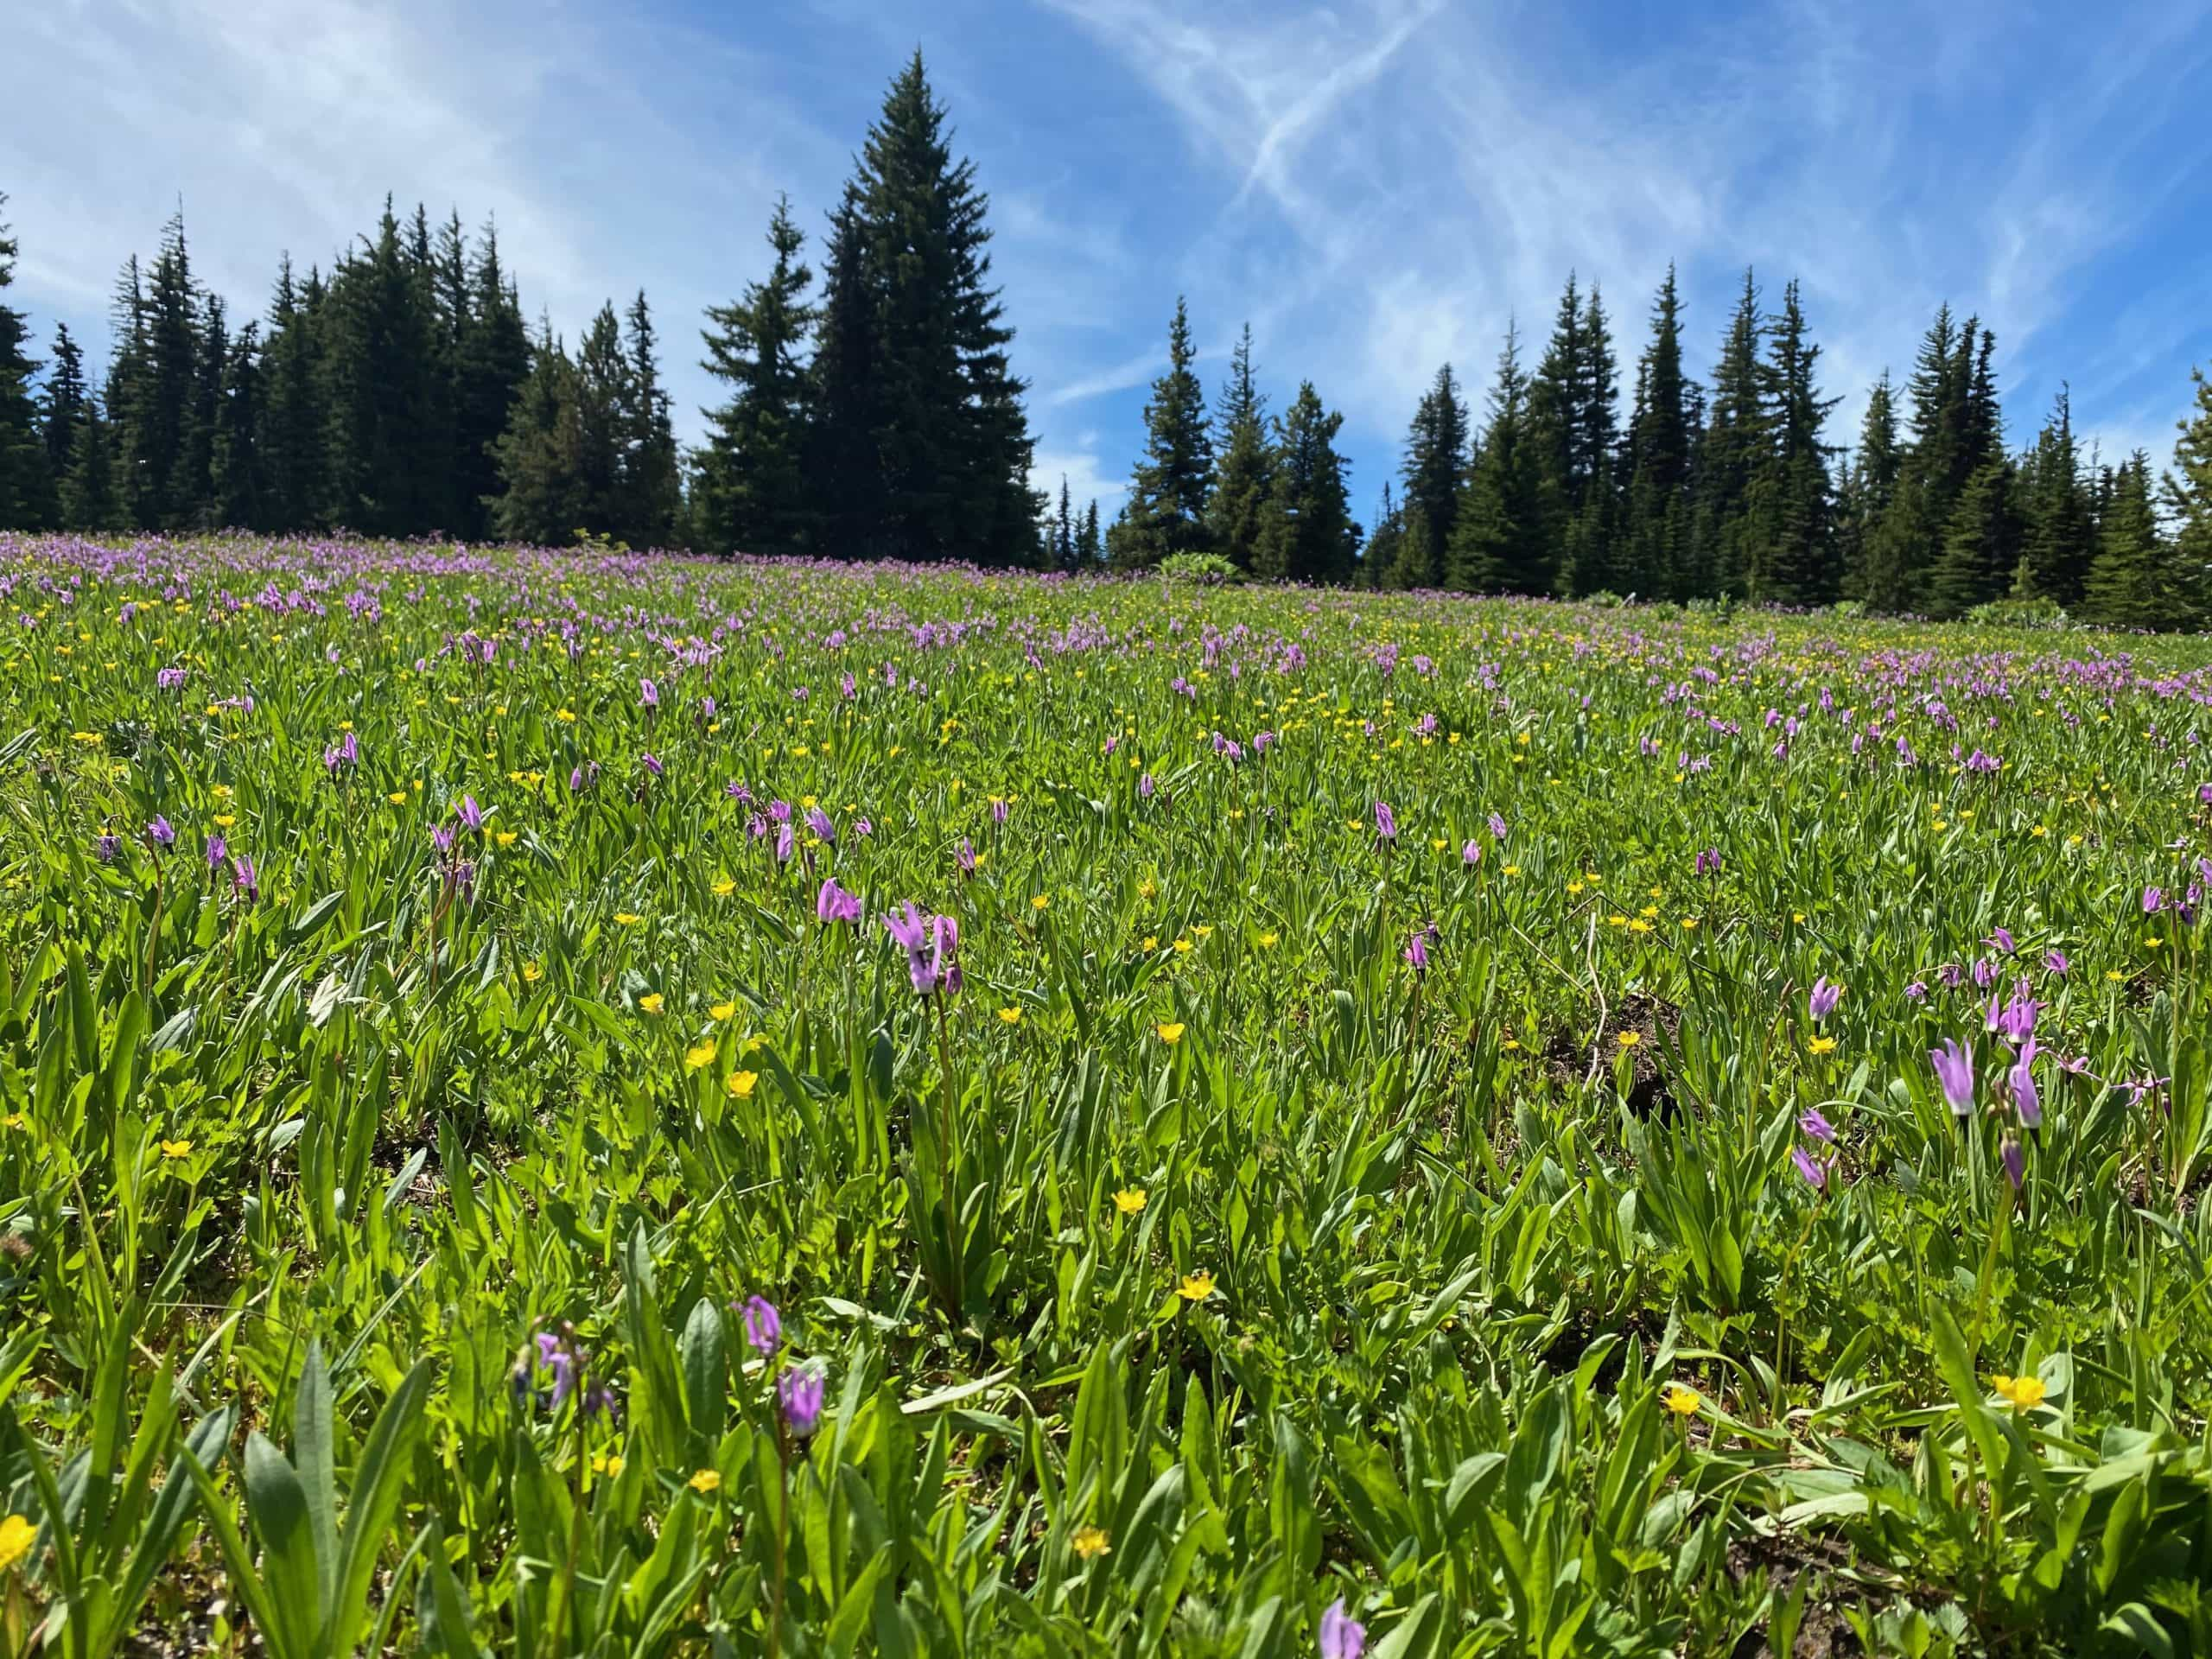 High Prairie in late June filled with flowers.